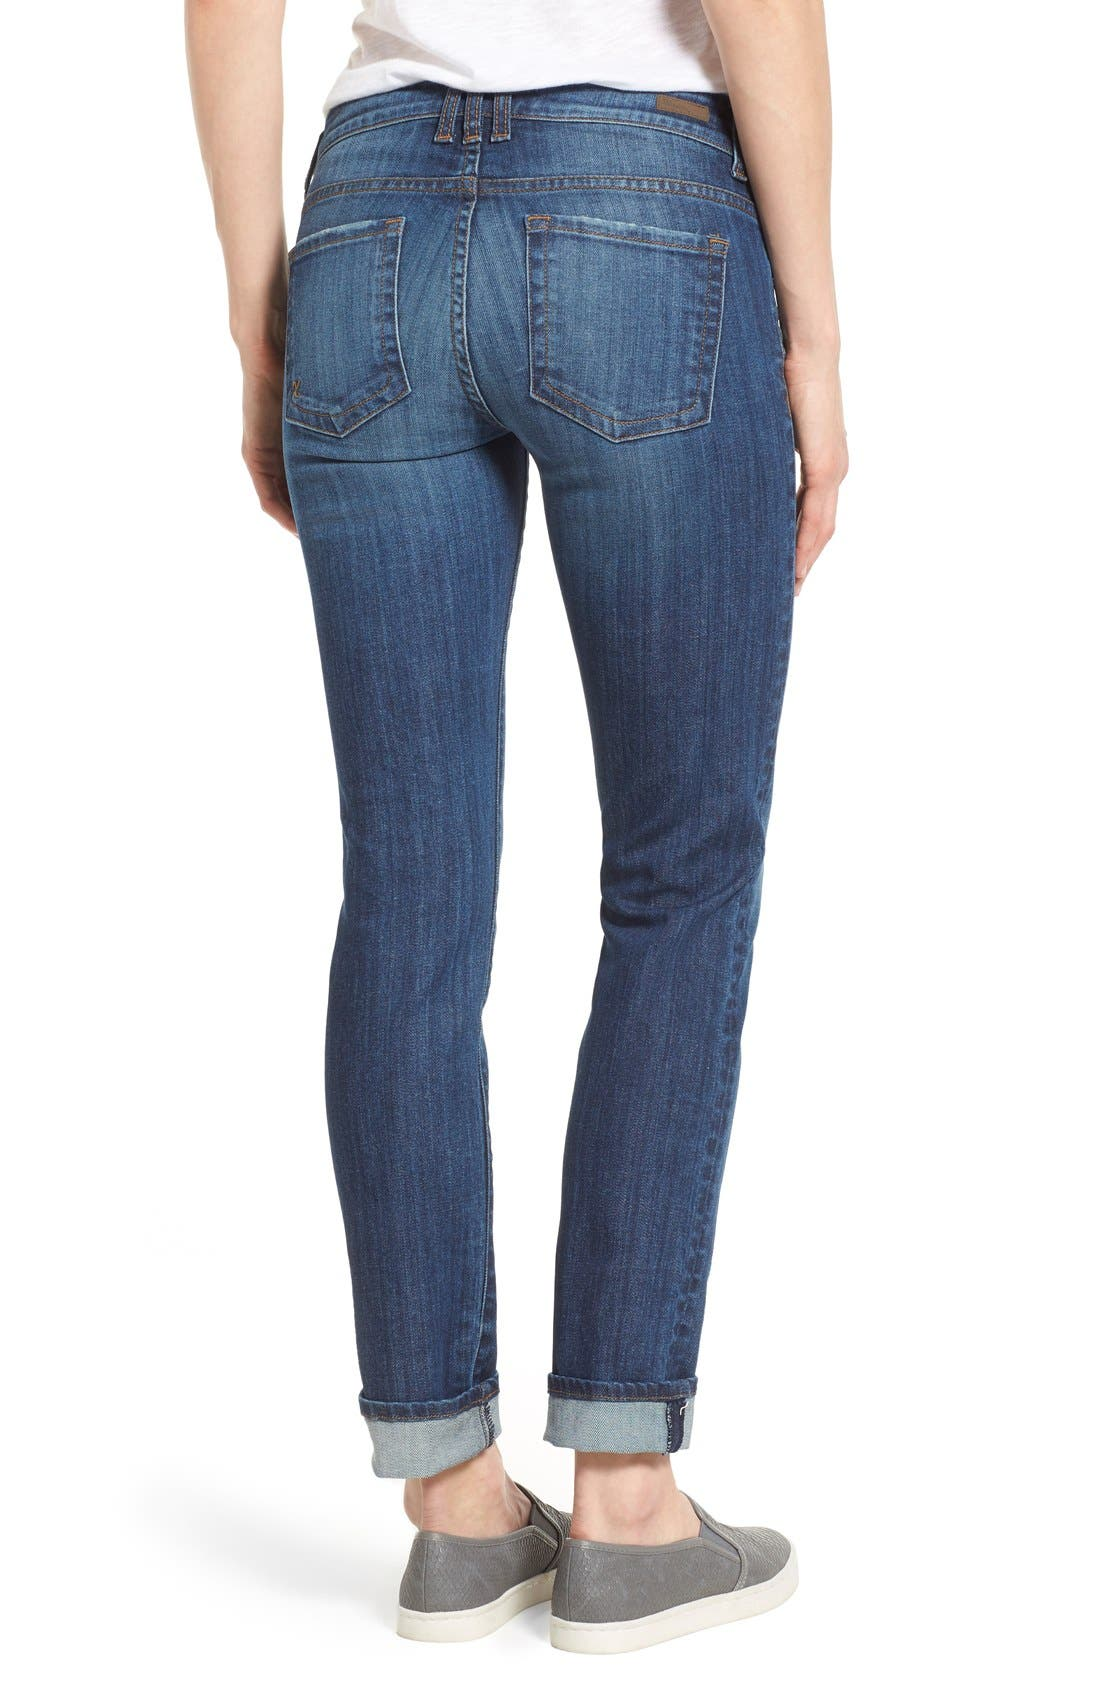 Alternate Image 2  - KUT from the Kloth 'Catherine' Distressed Stretch Boyfriend Jeans (Yearn) (Regular & Petite)